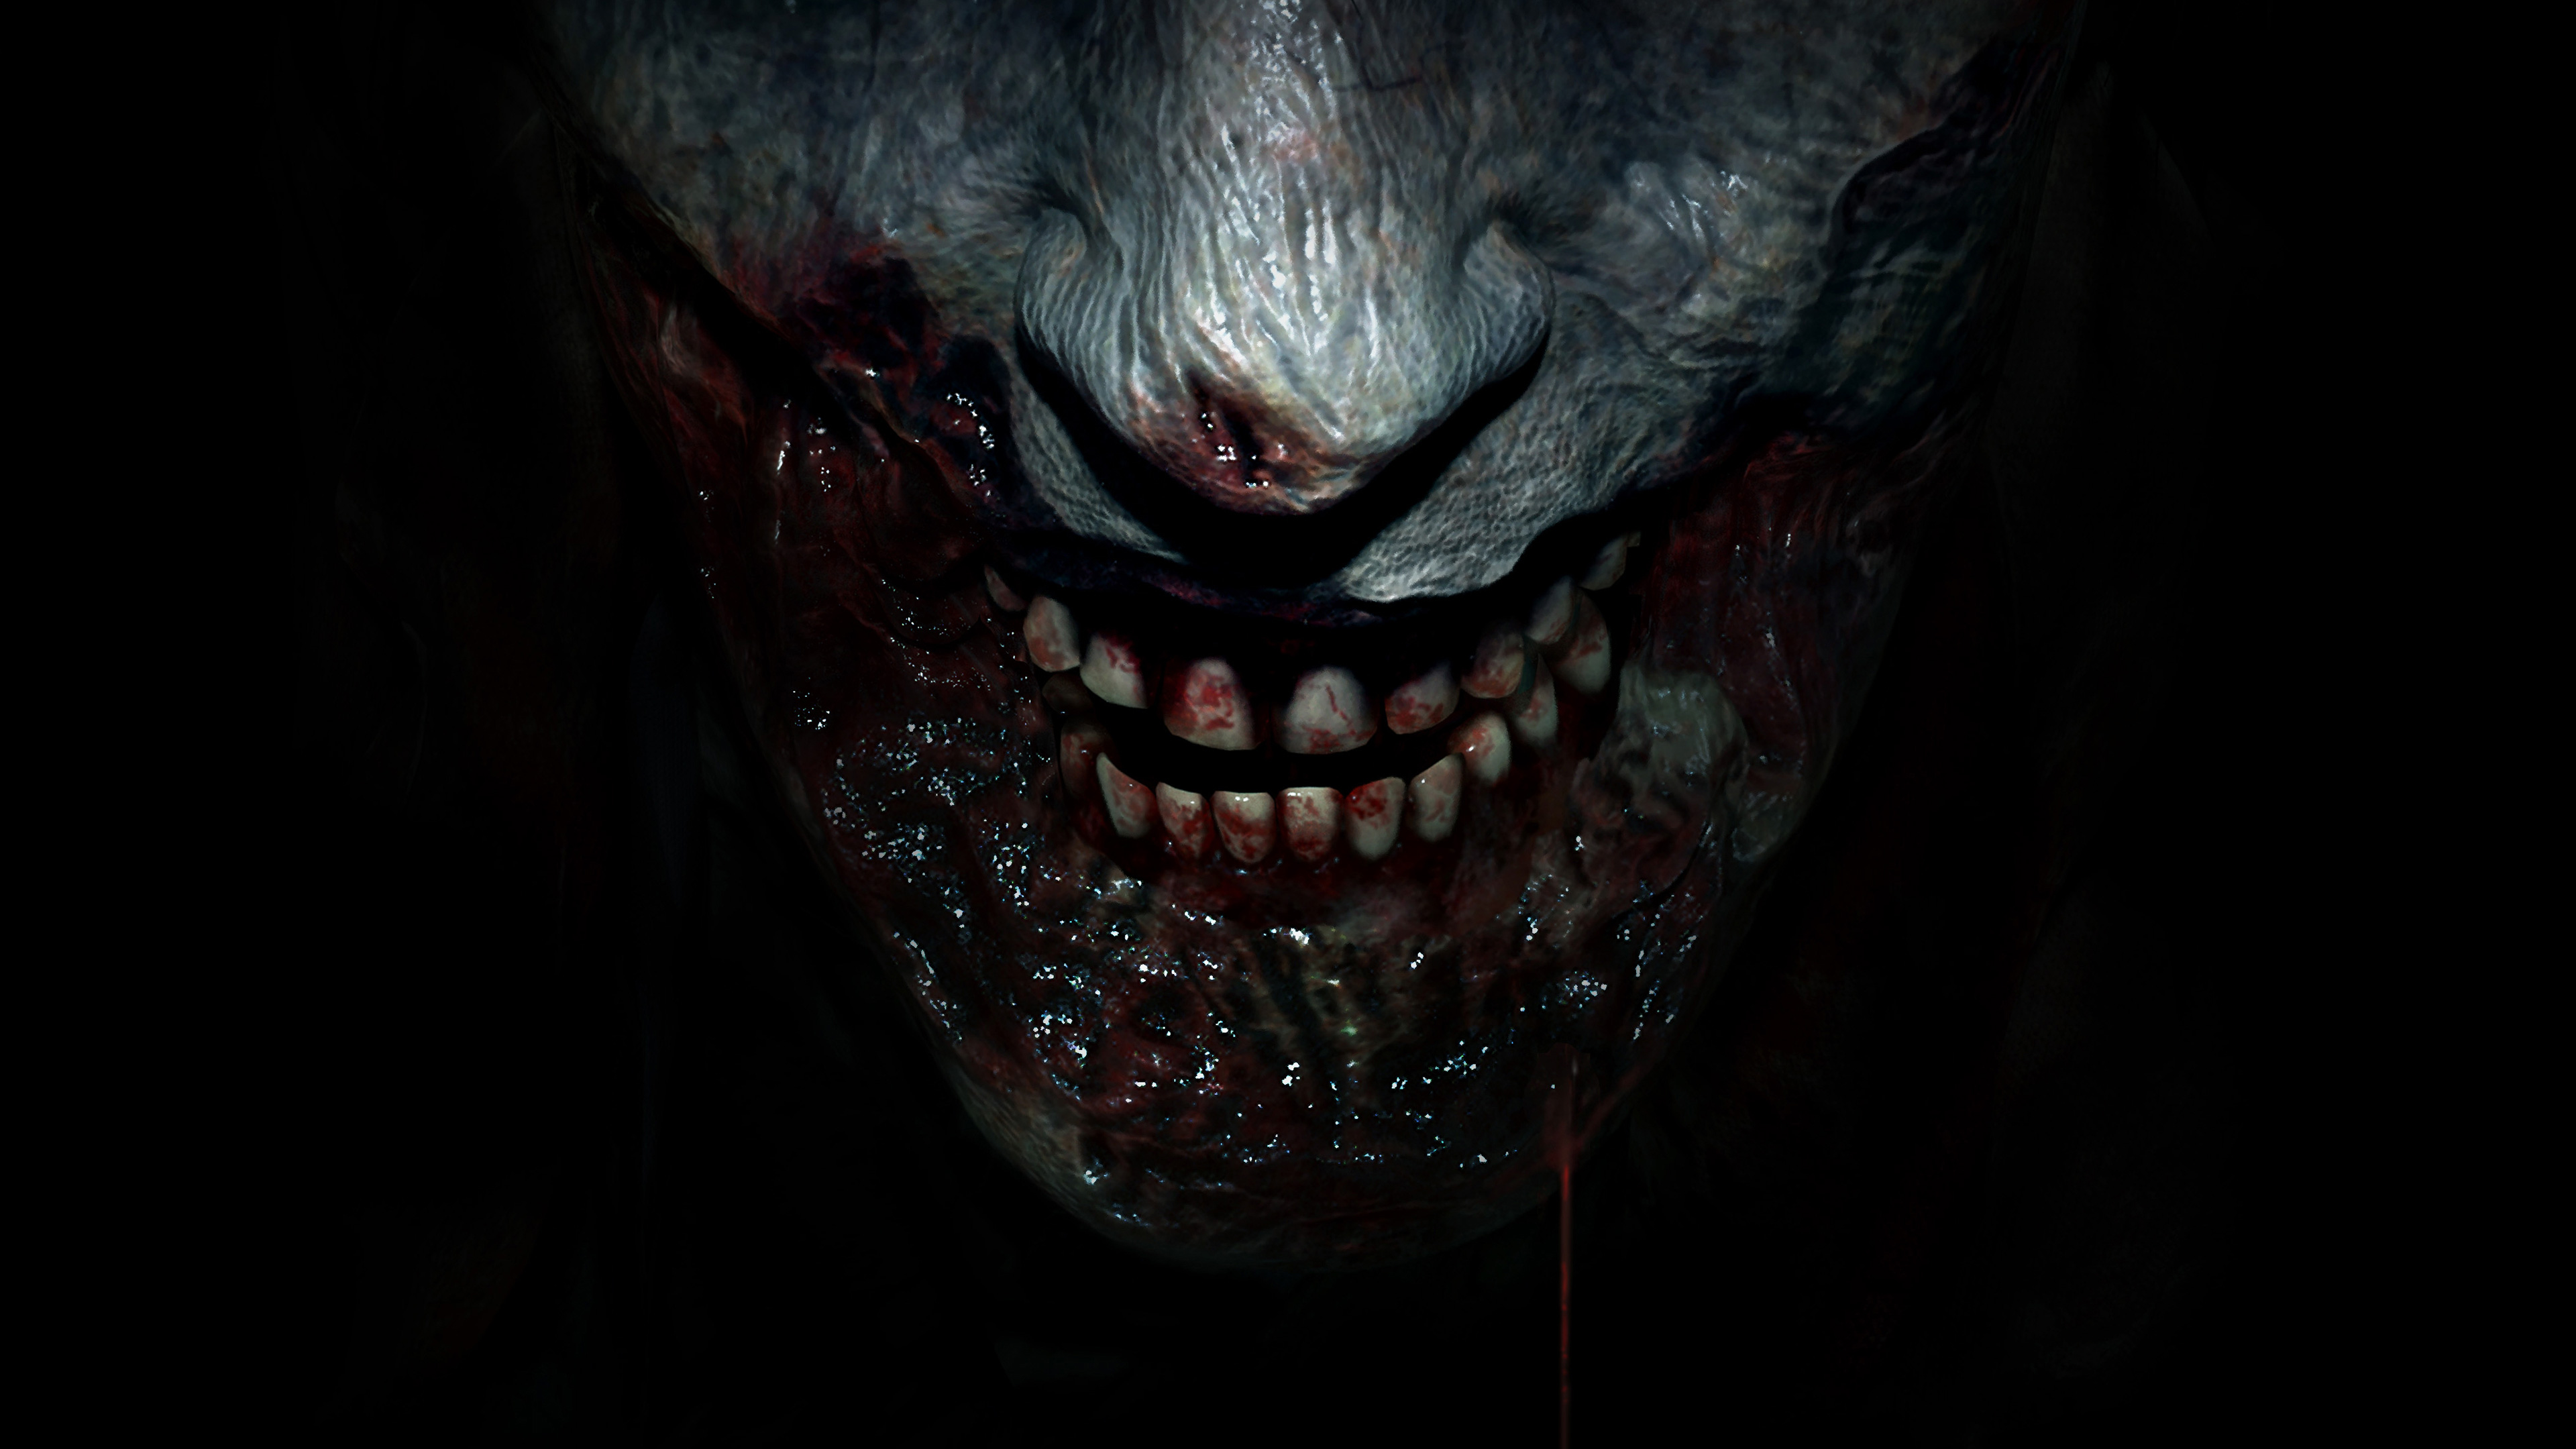 Resident Evil 2 Zombie 4k Hd Games 4k Wallpapers Images